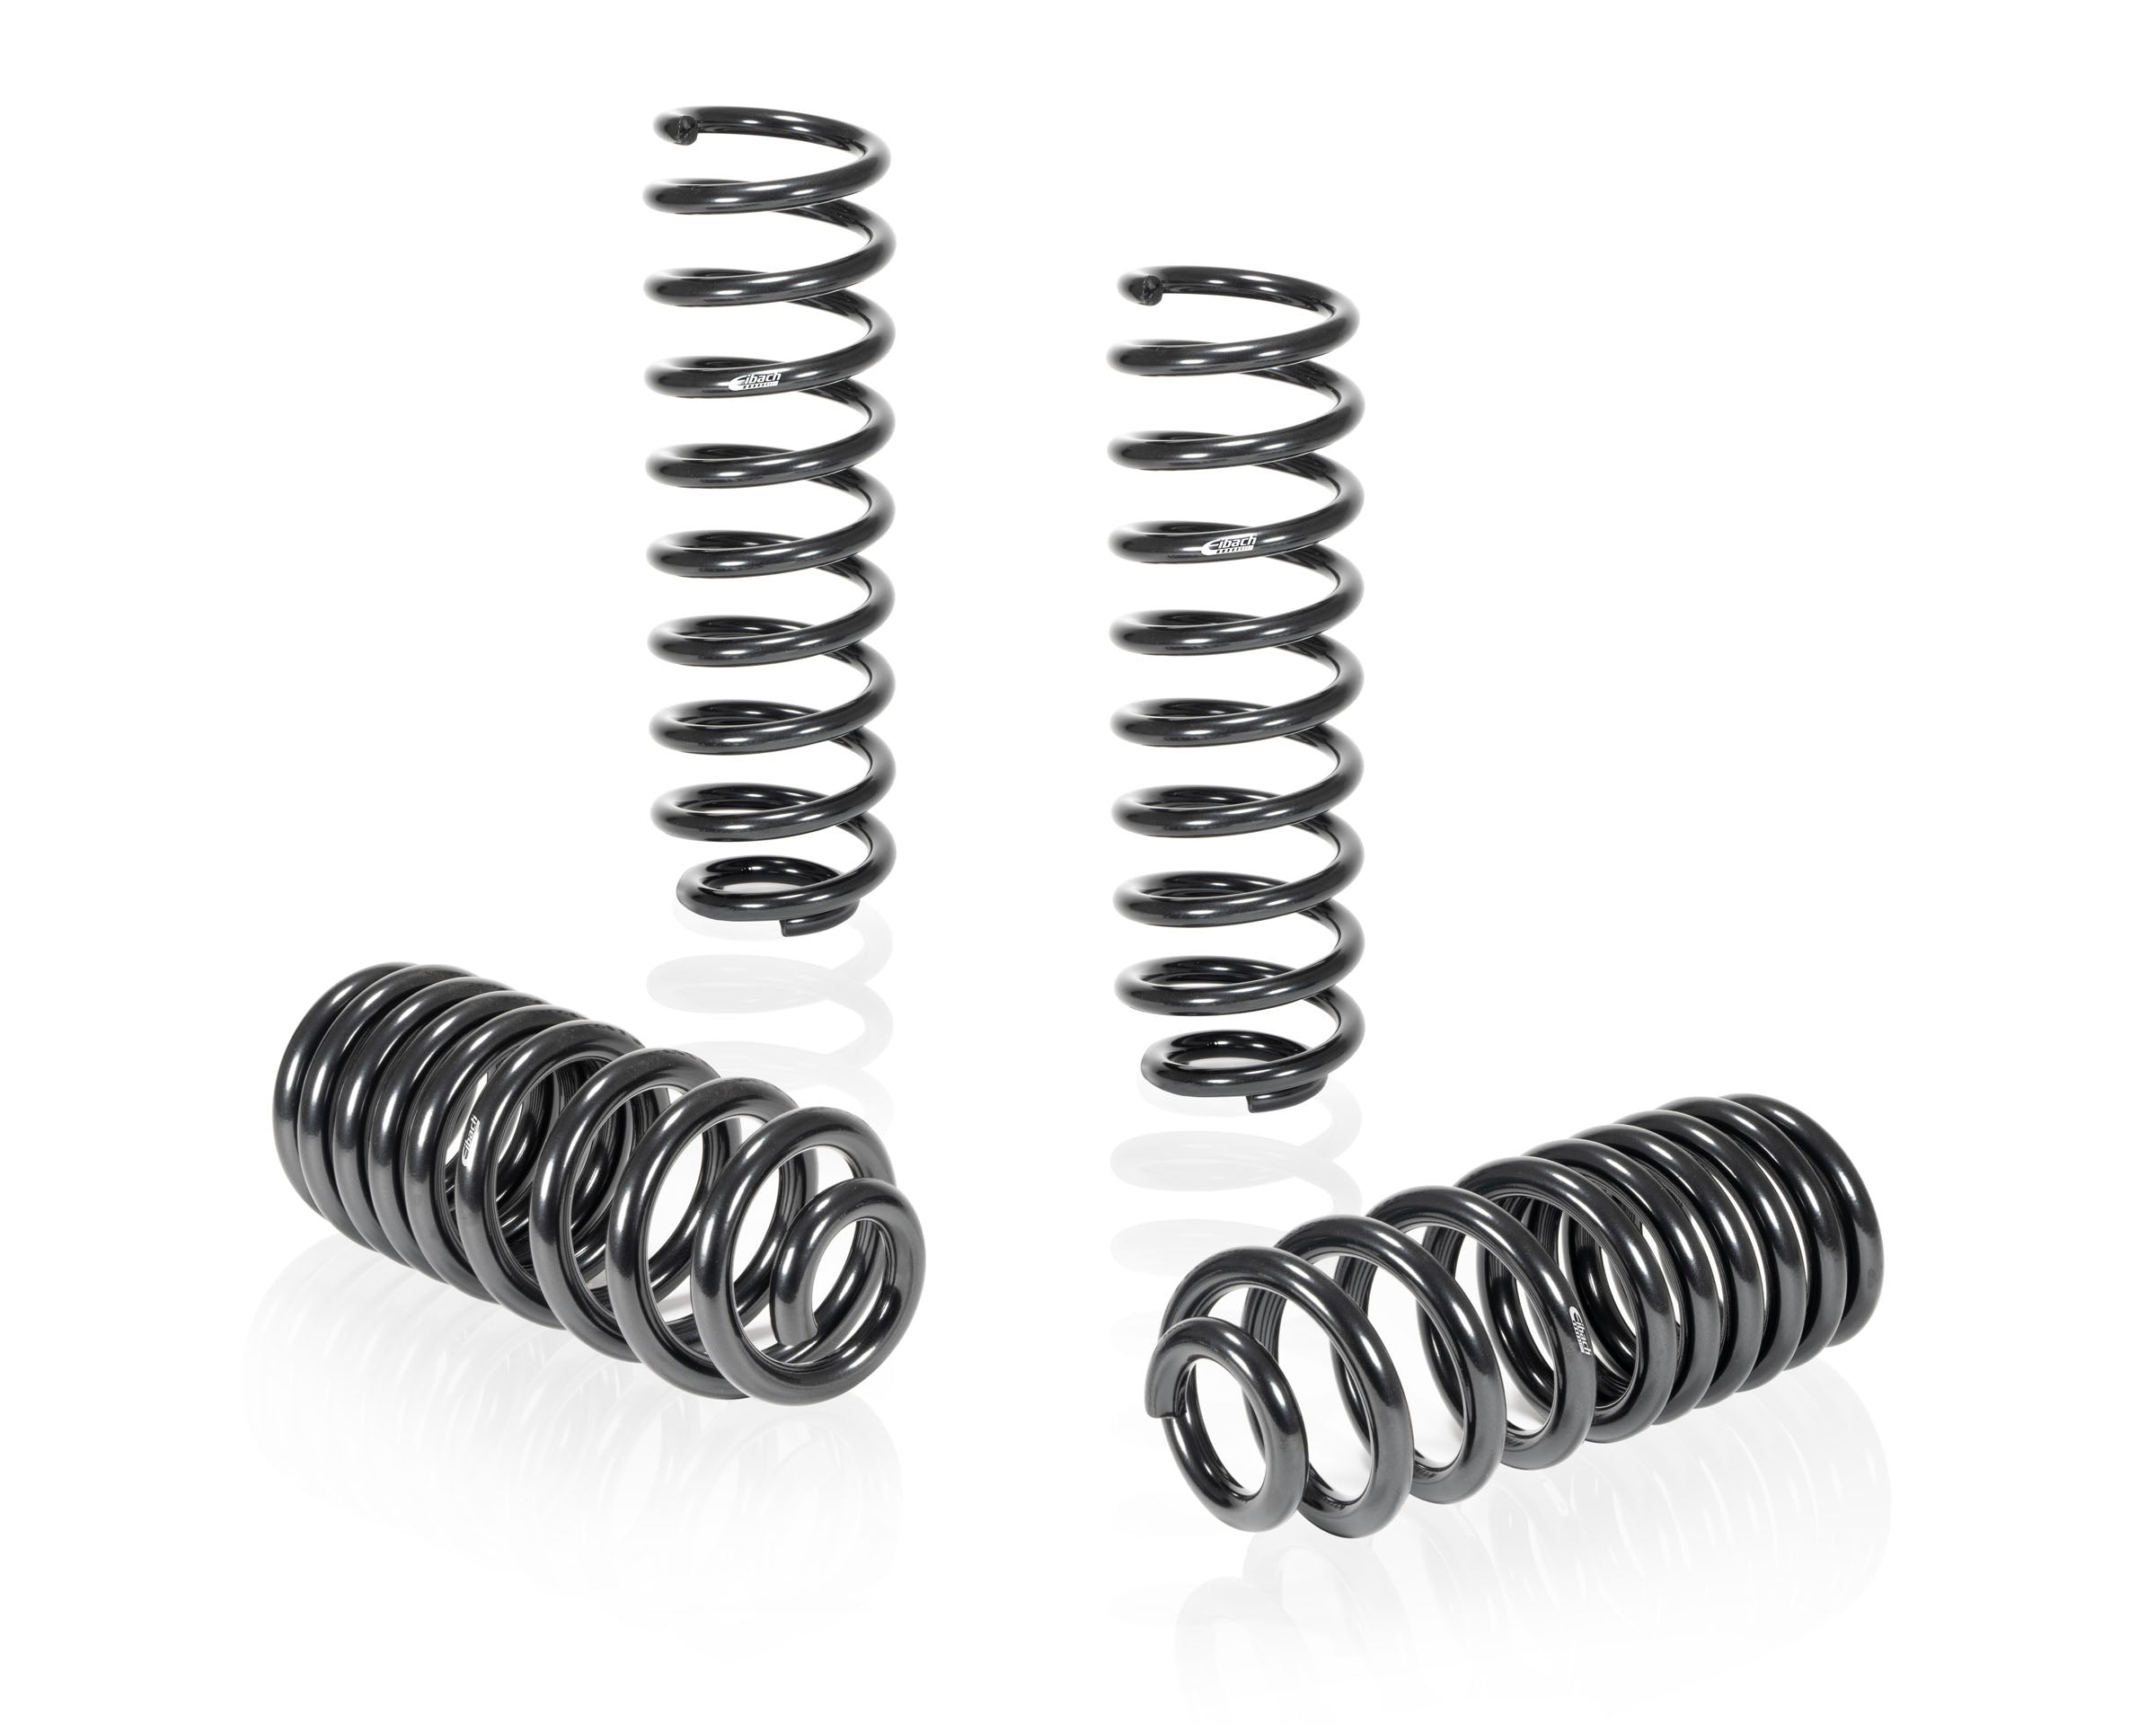 Eibach Suspension - Pro-Kit Performance Lowering Springs - 11-12 Grand Cherokee / 11-19 Durango - 28108.540